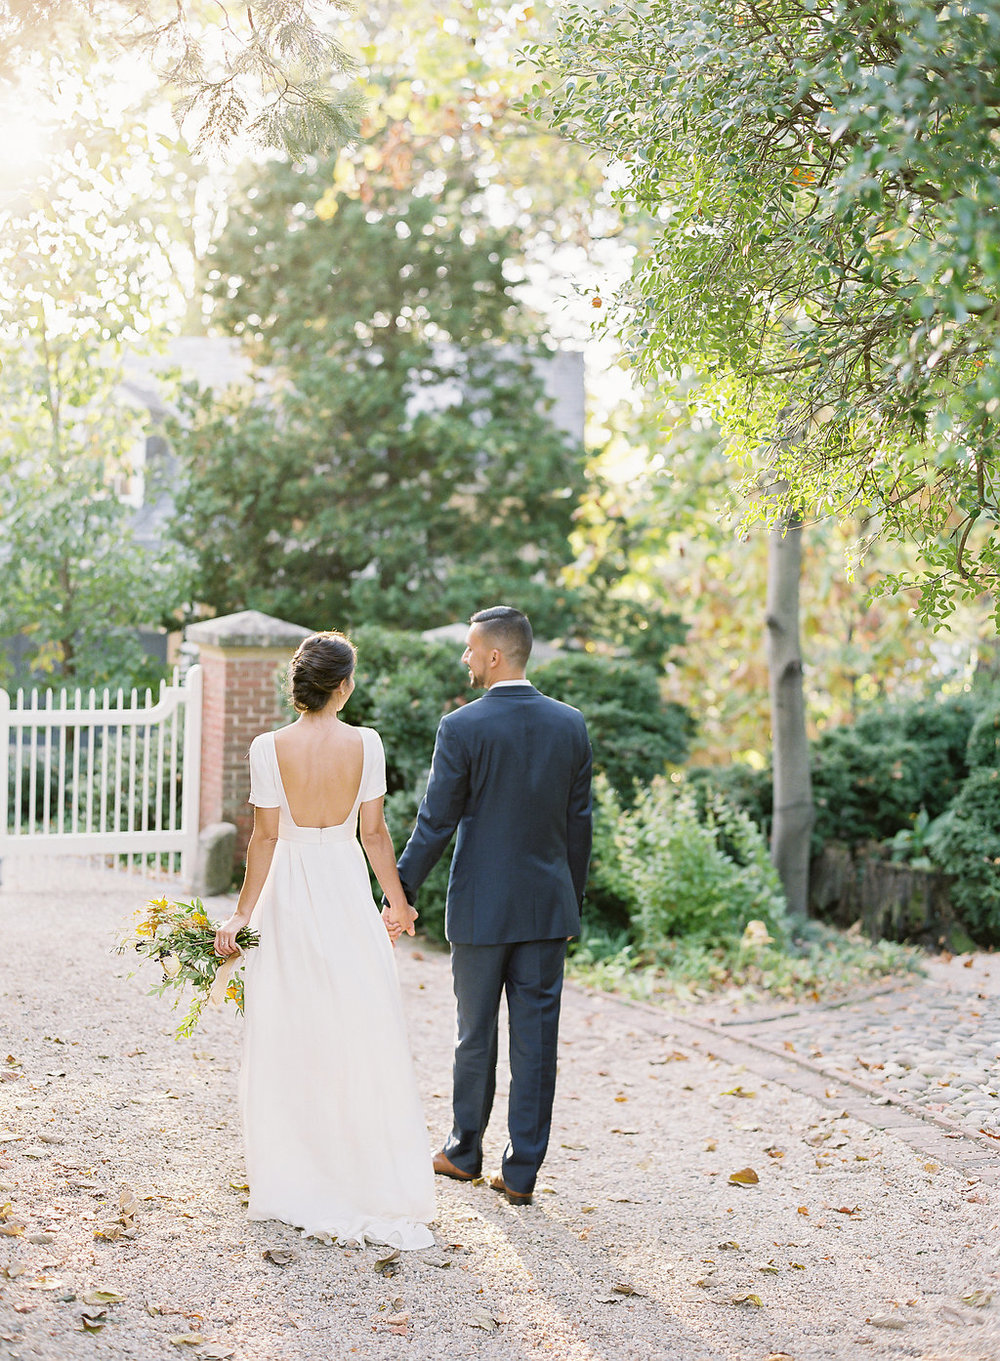 French Inspired Fall Wedding with Fine Art Destination Wedding Planner East Made Event Company and DC Film Photographer Vicki Grafton Photography at Tudor Place in Washington DC-45.jpg